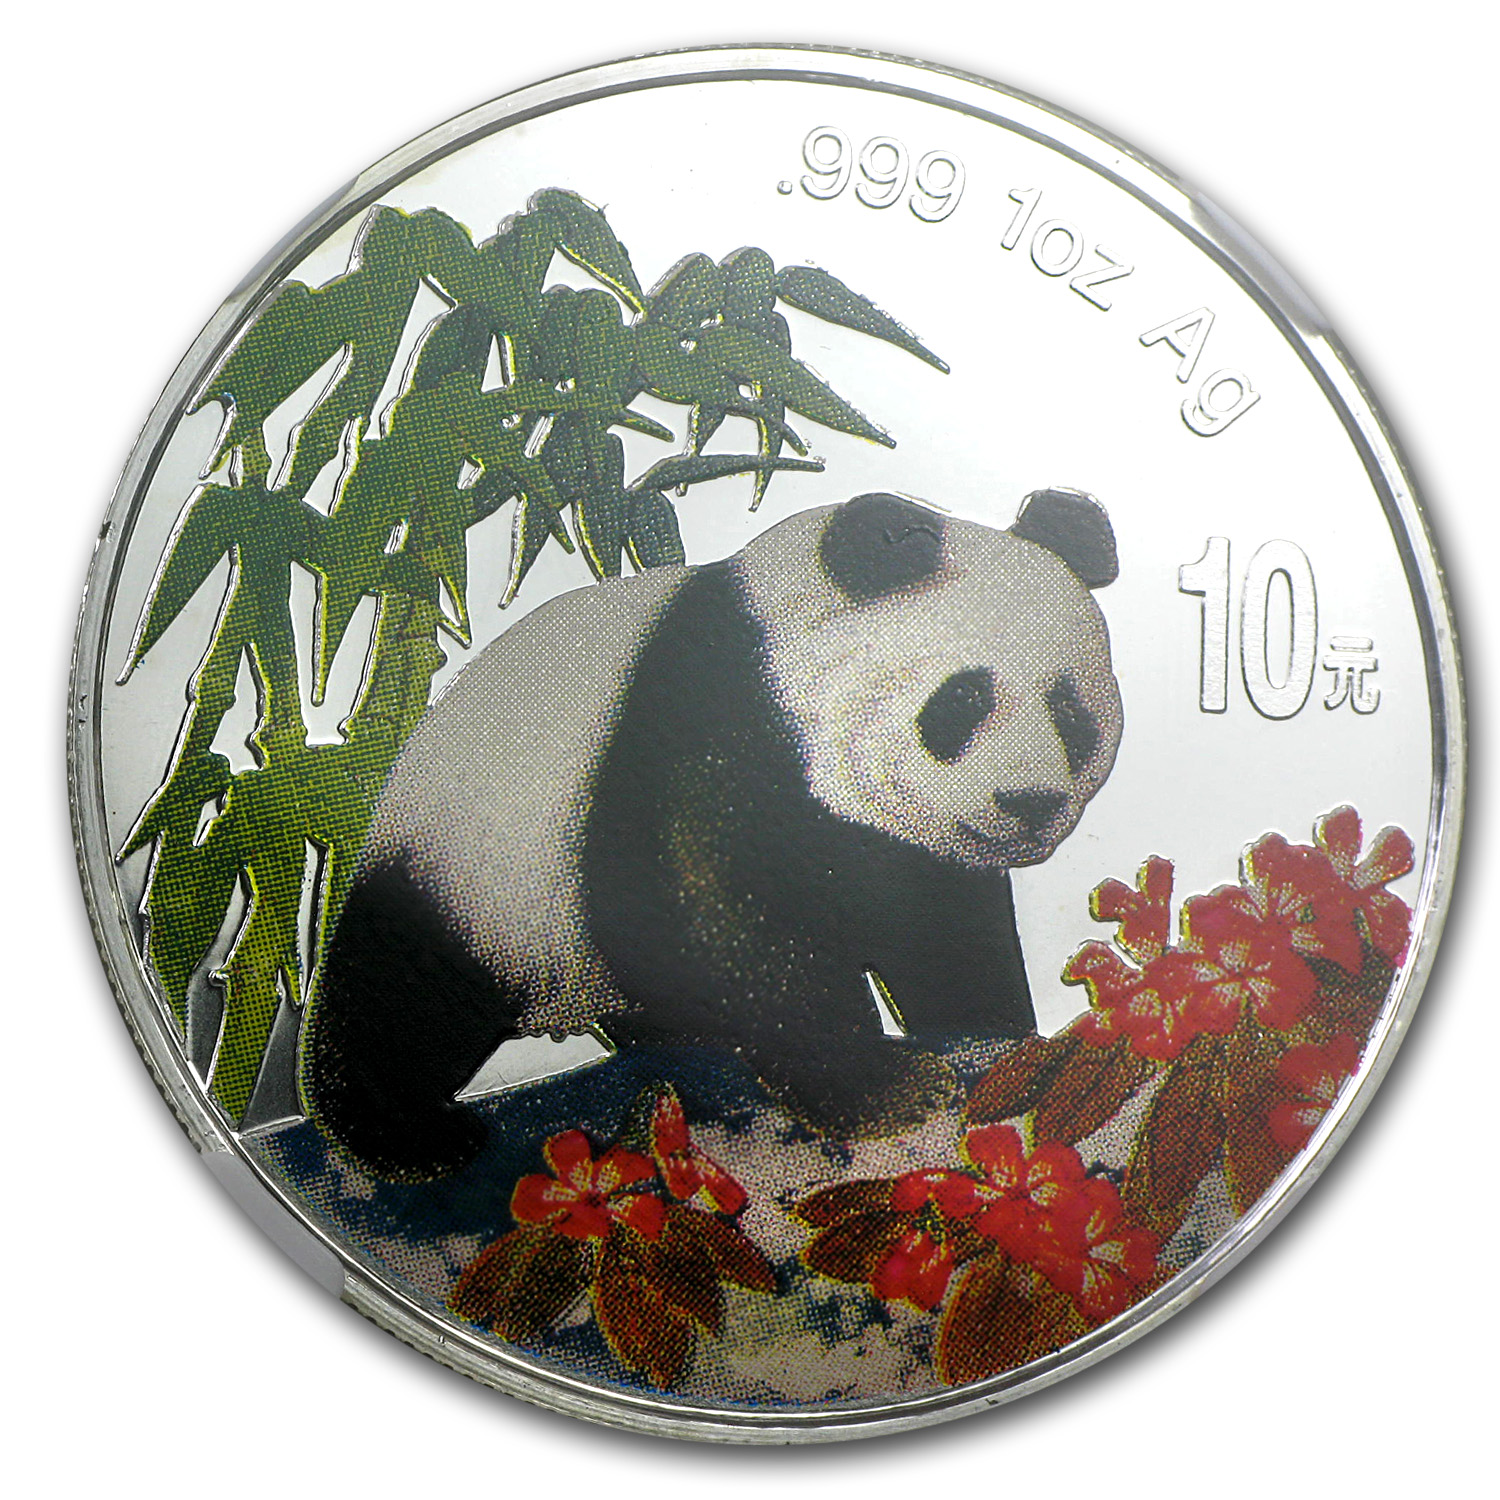 1997 China 1 oz Silver Panda PF-68 NGC (Colorized)